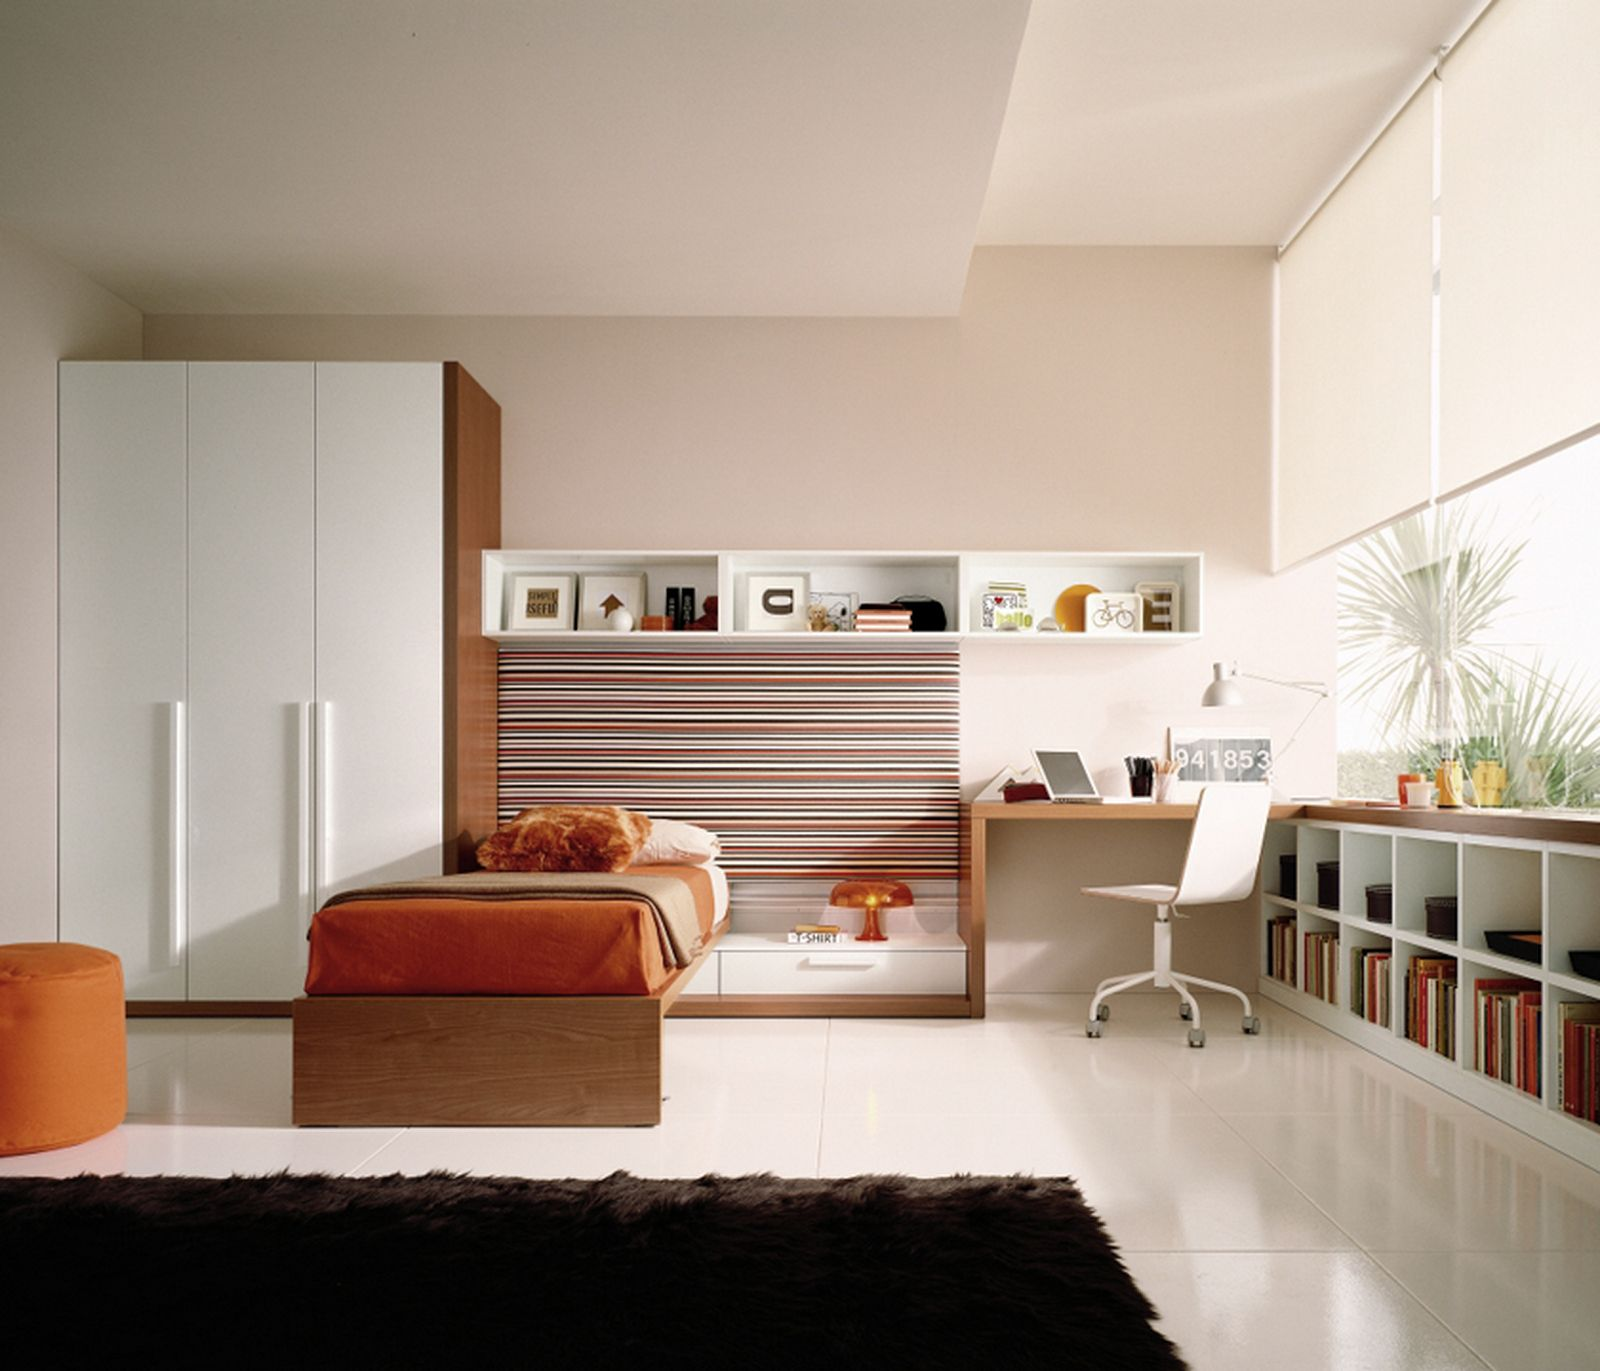 modern-white-nuance-interior-children-design-with-italian-childrens-furniture-that-applied-black-soft-carpet-and-also-cream-bed-can-add-the-modern-nuance-it-has-white-plafond-inside-the-room1